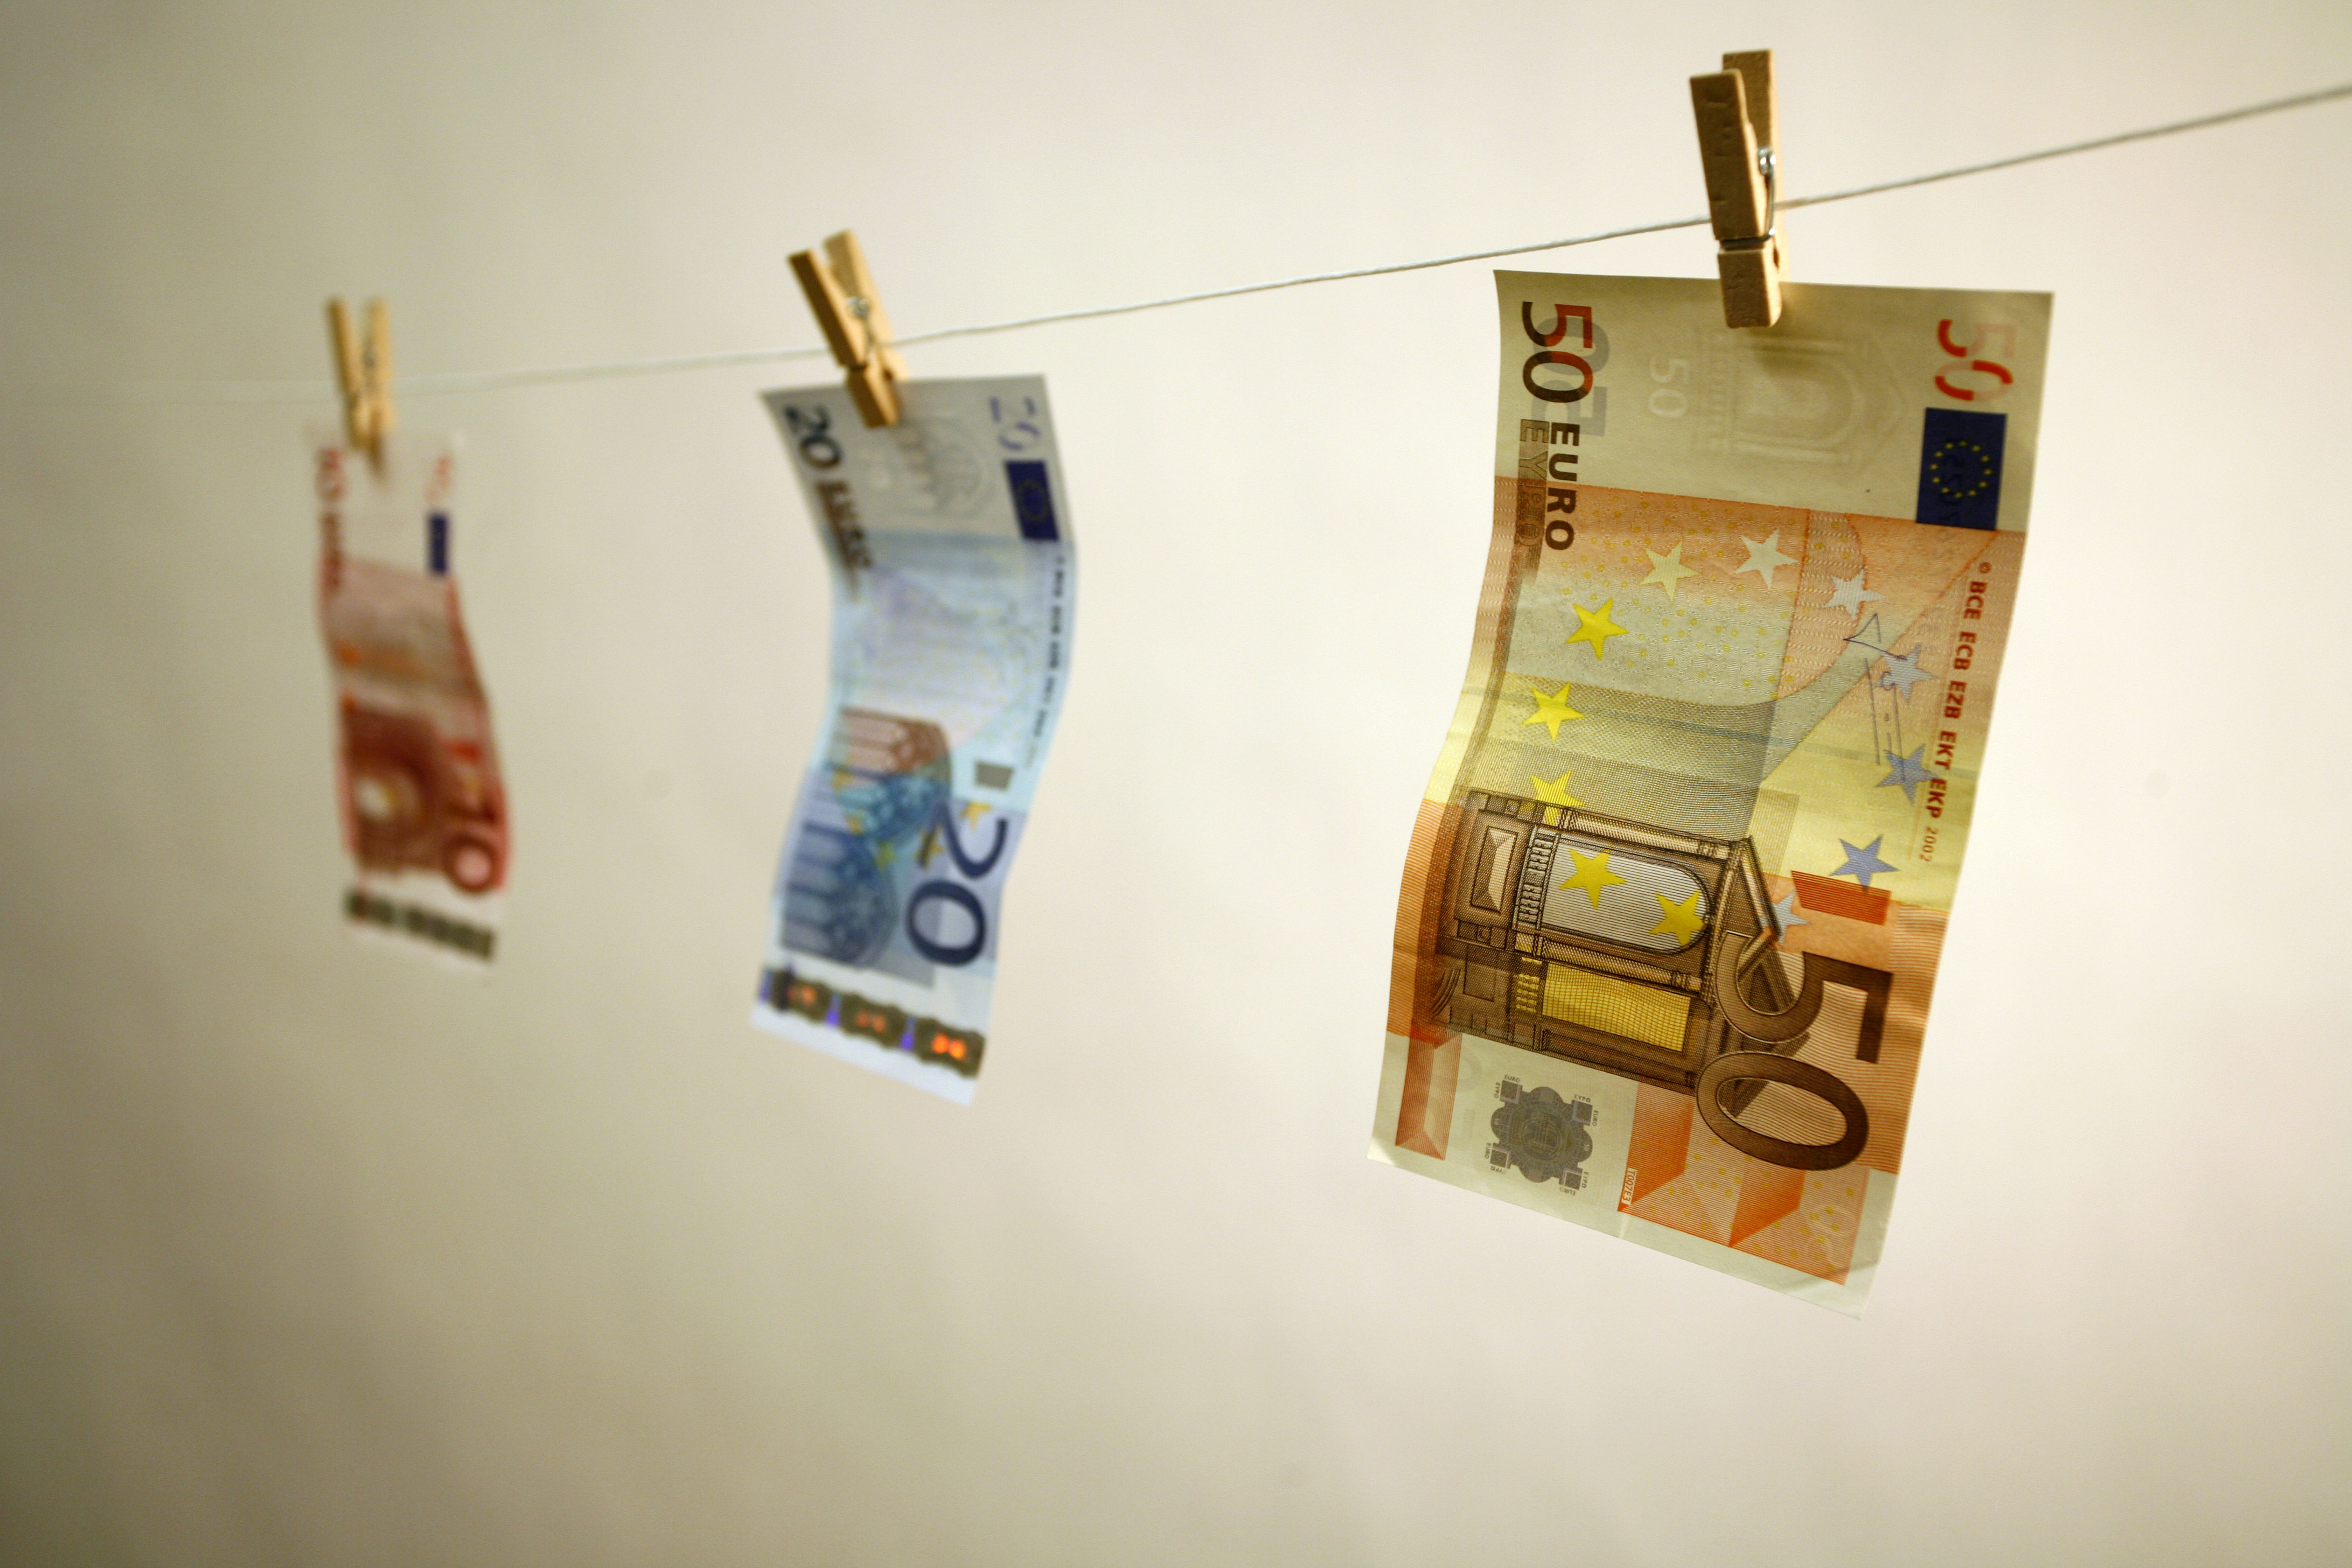 [Opinion] Russia and money laundering in Europe